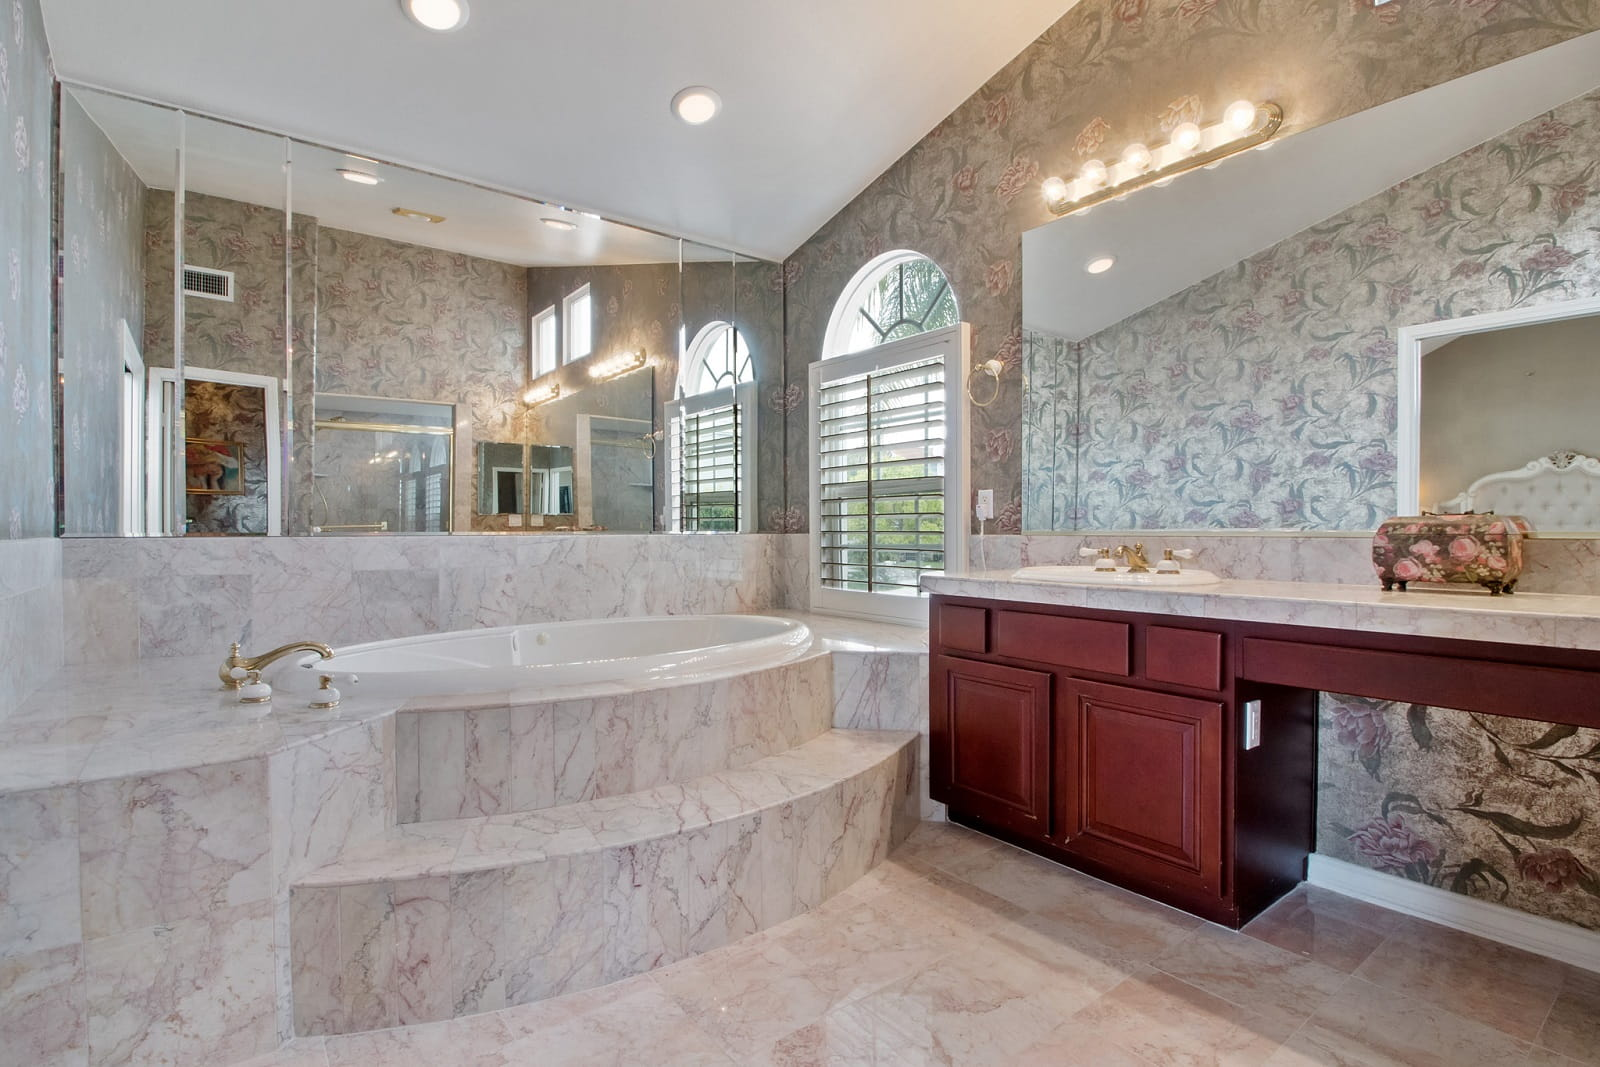 Real Estate Photography in Anaheim - CA - USA - Bathroom View